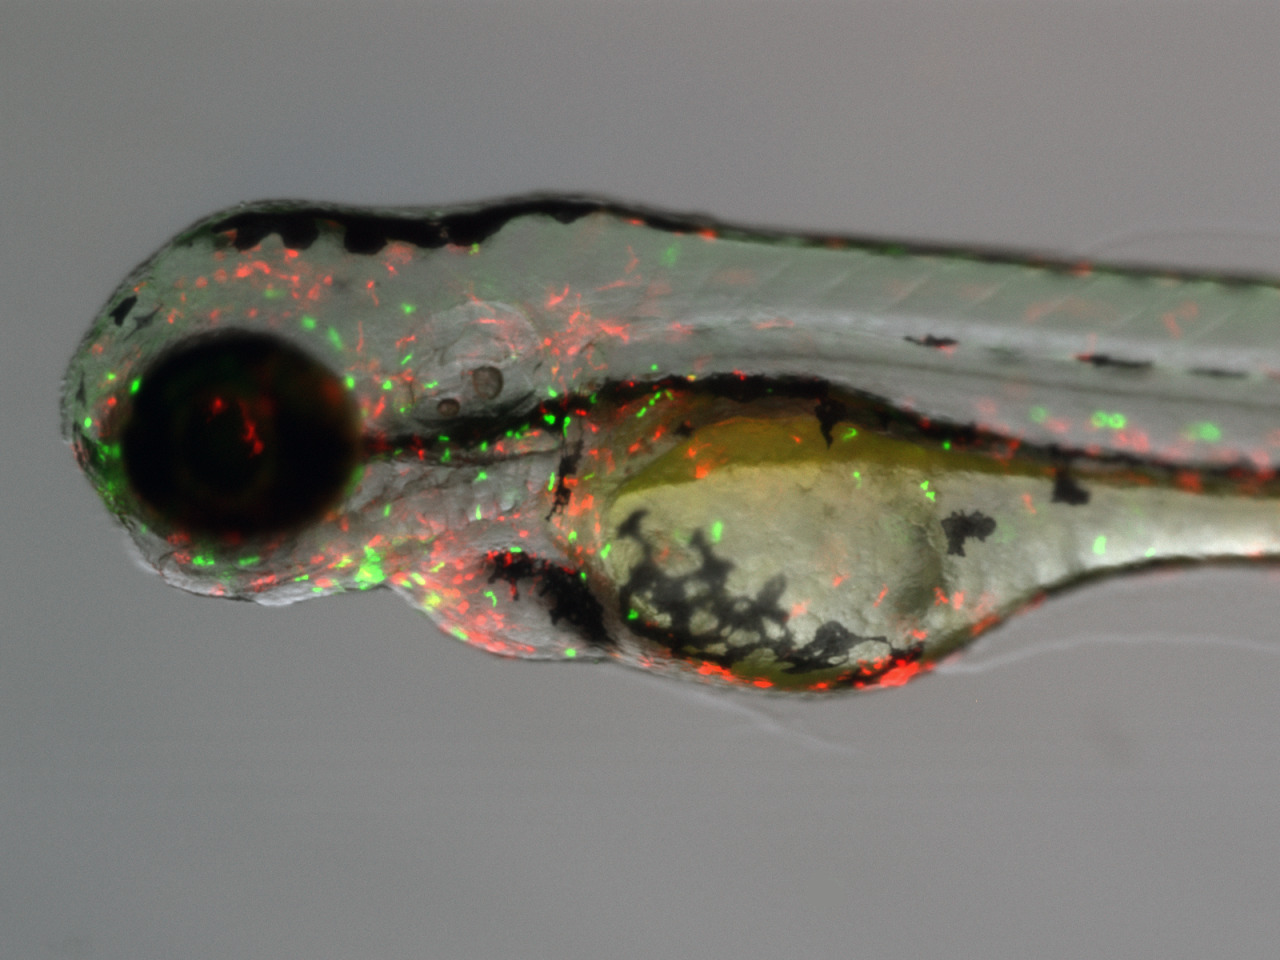 Could Zebrafish lead the way in the future of shape shifting? In a 2012 study, researchers in Bristol created artificial muscles, an example of artificial transmogrification - the ability to 'shape shift' or simply to change physical appearance due to stimuli or independent thought. The ability to change physical form is shown in many animals, from bioluminescent sea dwellers to the common chameleon, It's believed that these abilities are used to represent mood, to fend off predators, to communicate and to camouflage. The malleable artificial muscles were inspired by chromatophores, a specialist cell found in all of these animals, the chromatophores are organelles found in cells responsible for pigmentation change and light reflection. According to the development team, their artificial chromatophores may eventually evolve into artificial compliant skin which can stretch and deform, yet still operative effectively. Is this the future of medical science? Is skingrafting to be a thing of the past? Do stem cells have competition? Only time can tell.